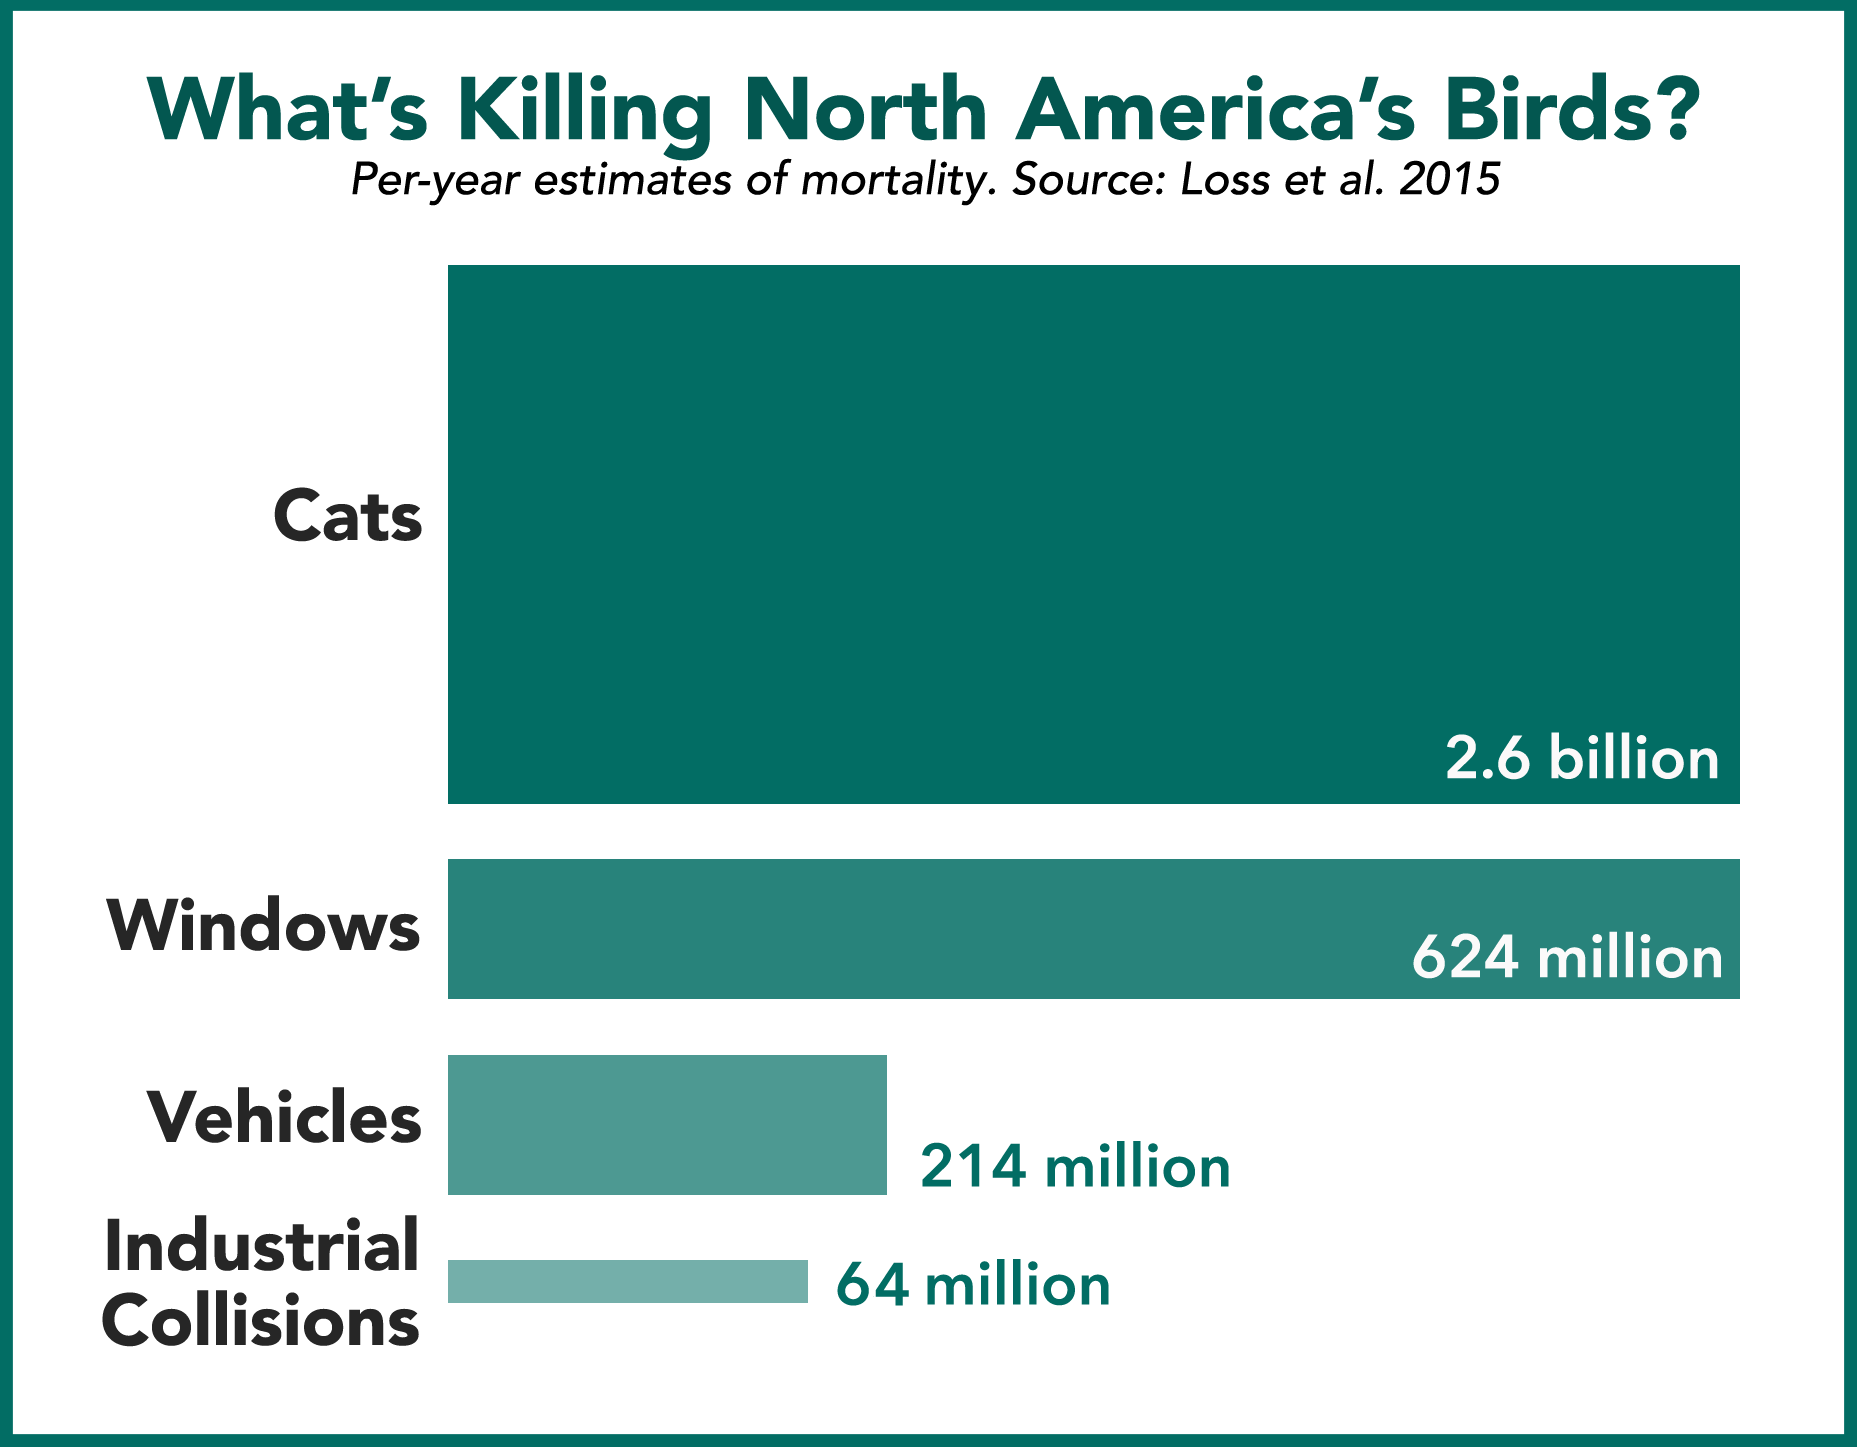 Estimates of annual bird deaths from specific human-related causes (other than habitat loss) in the United States and Canada. Industrial collisions include deaths from power lines (57 million), communication towers (6.8 million), and wind turbines (140,000–679,089). Source:  Loss et al. 2015 .